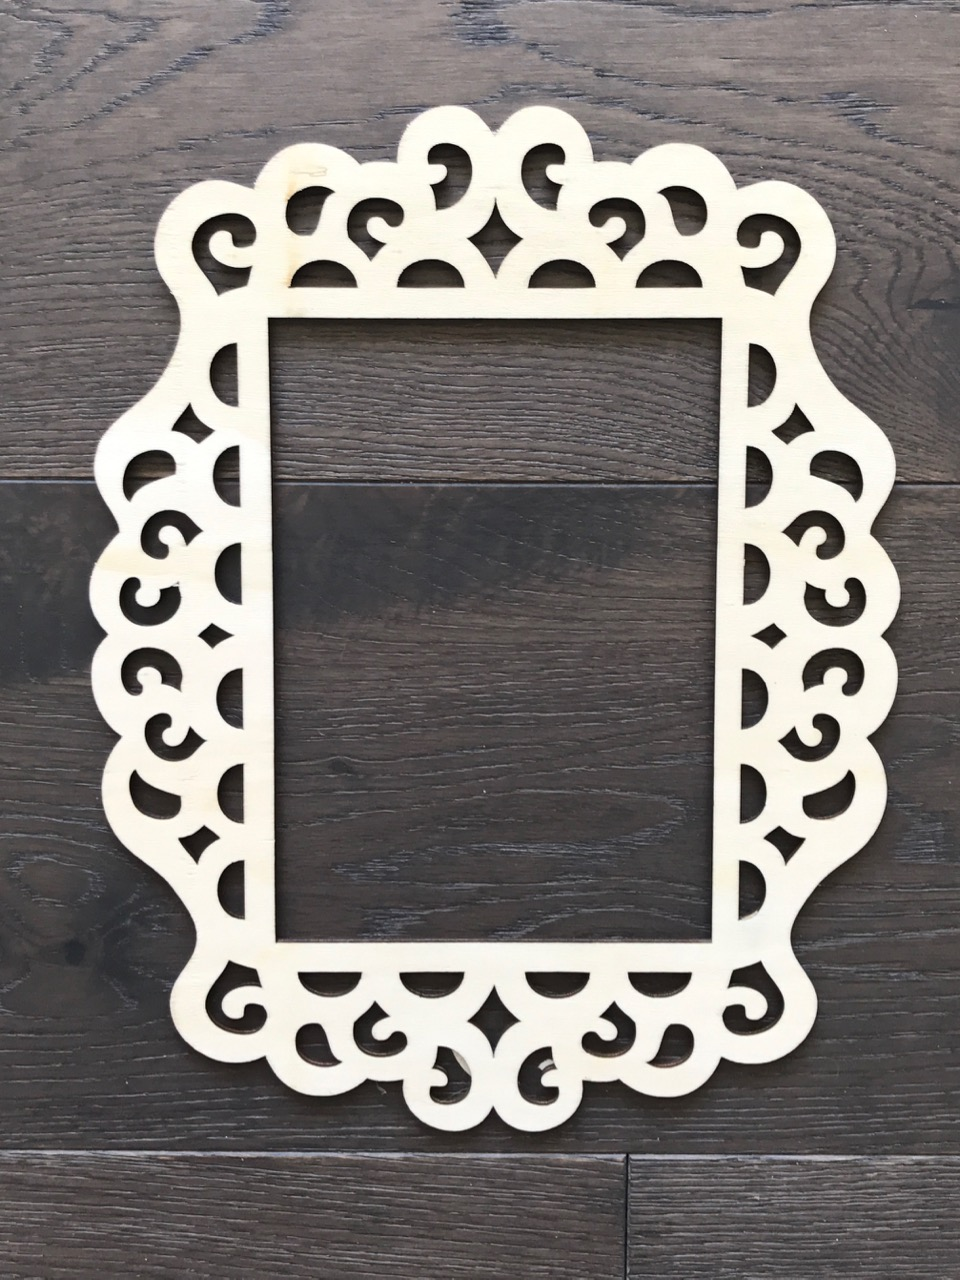 $4 - 4.5 inches by 6.75 inches middle insert - 2 available I love using these ones to frame around a letter, or an object. Price includes being painted or stained a colour to match your decor